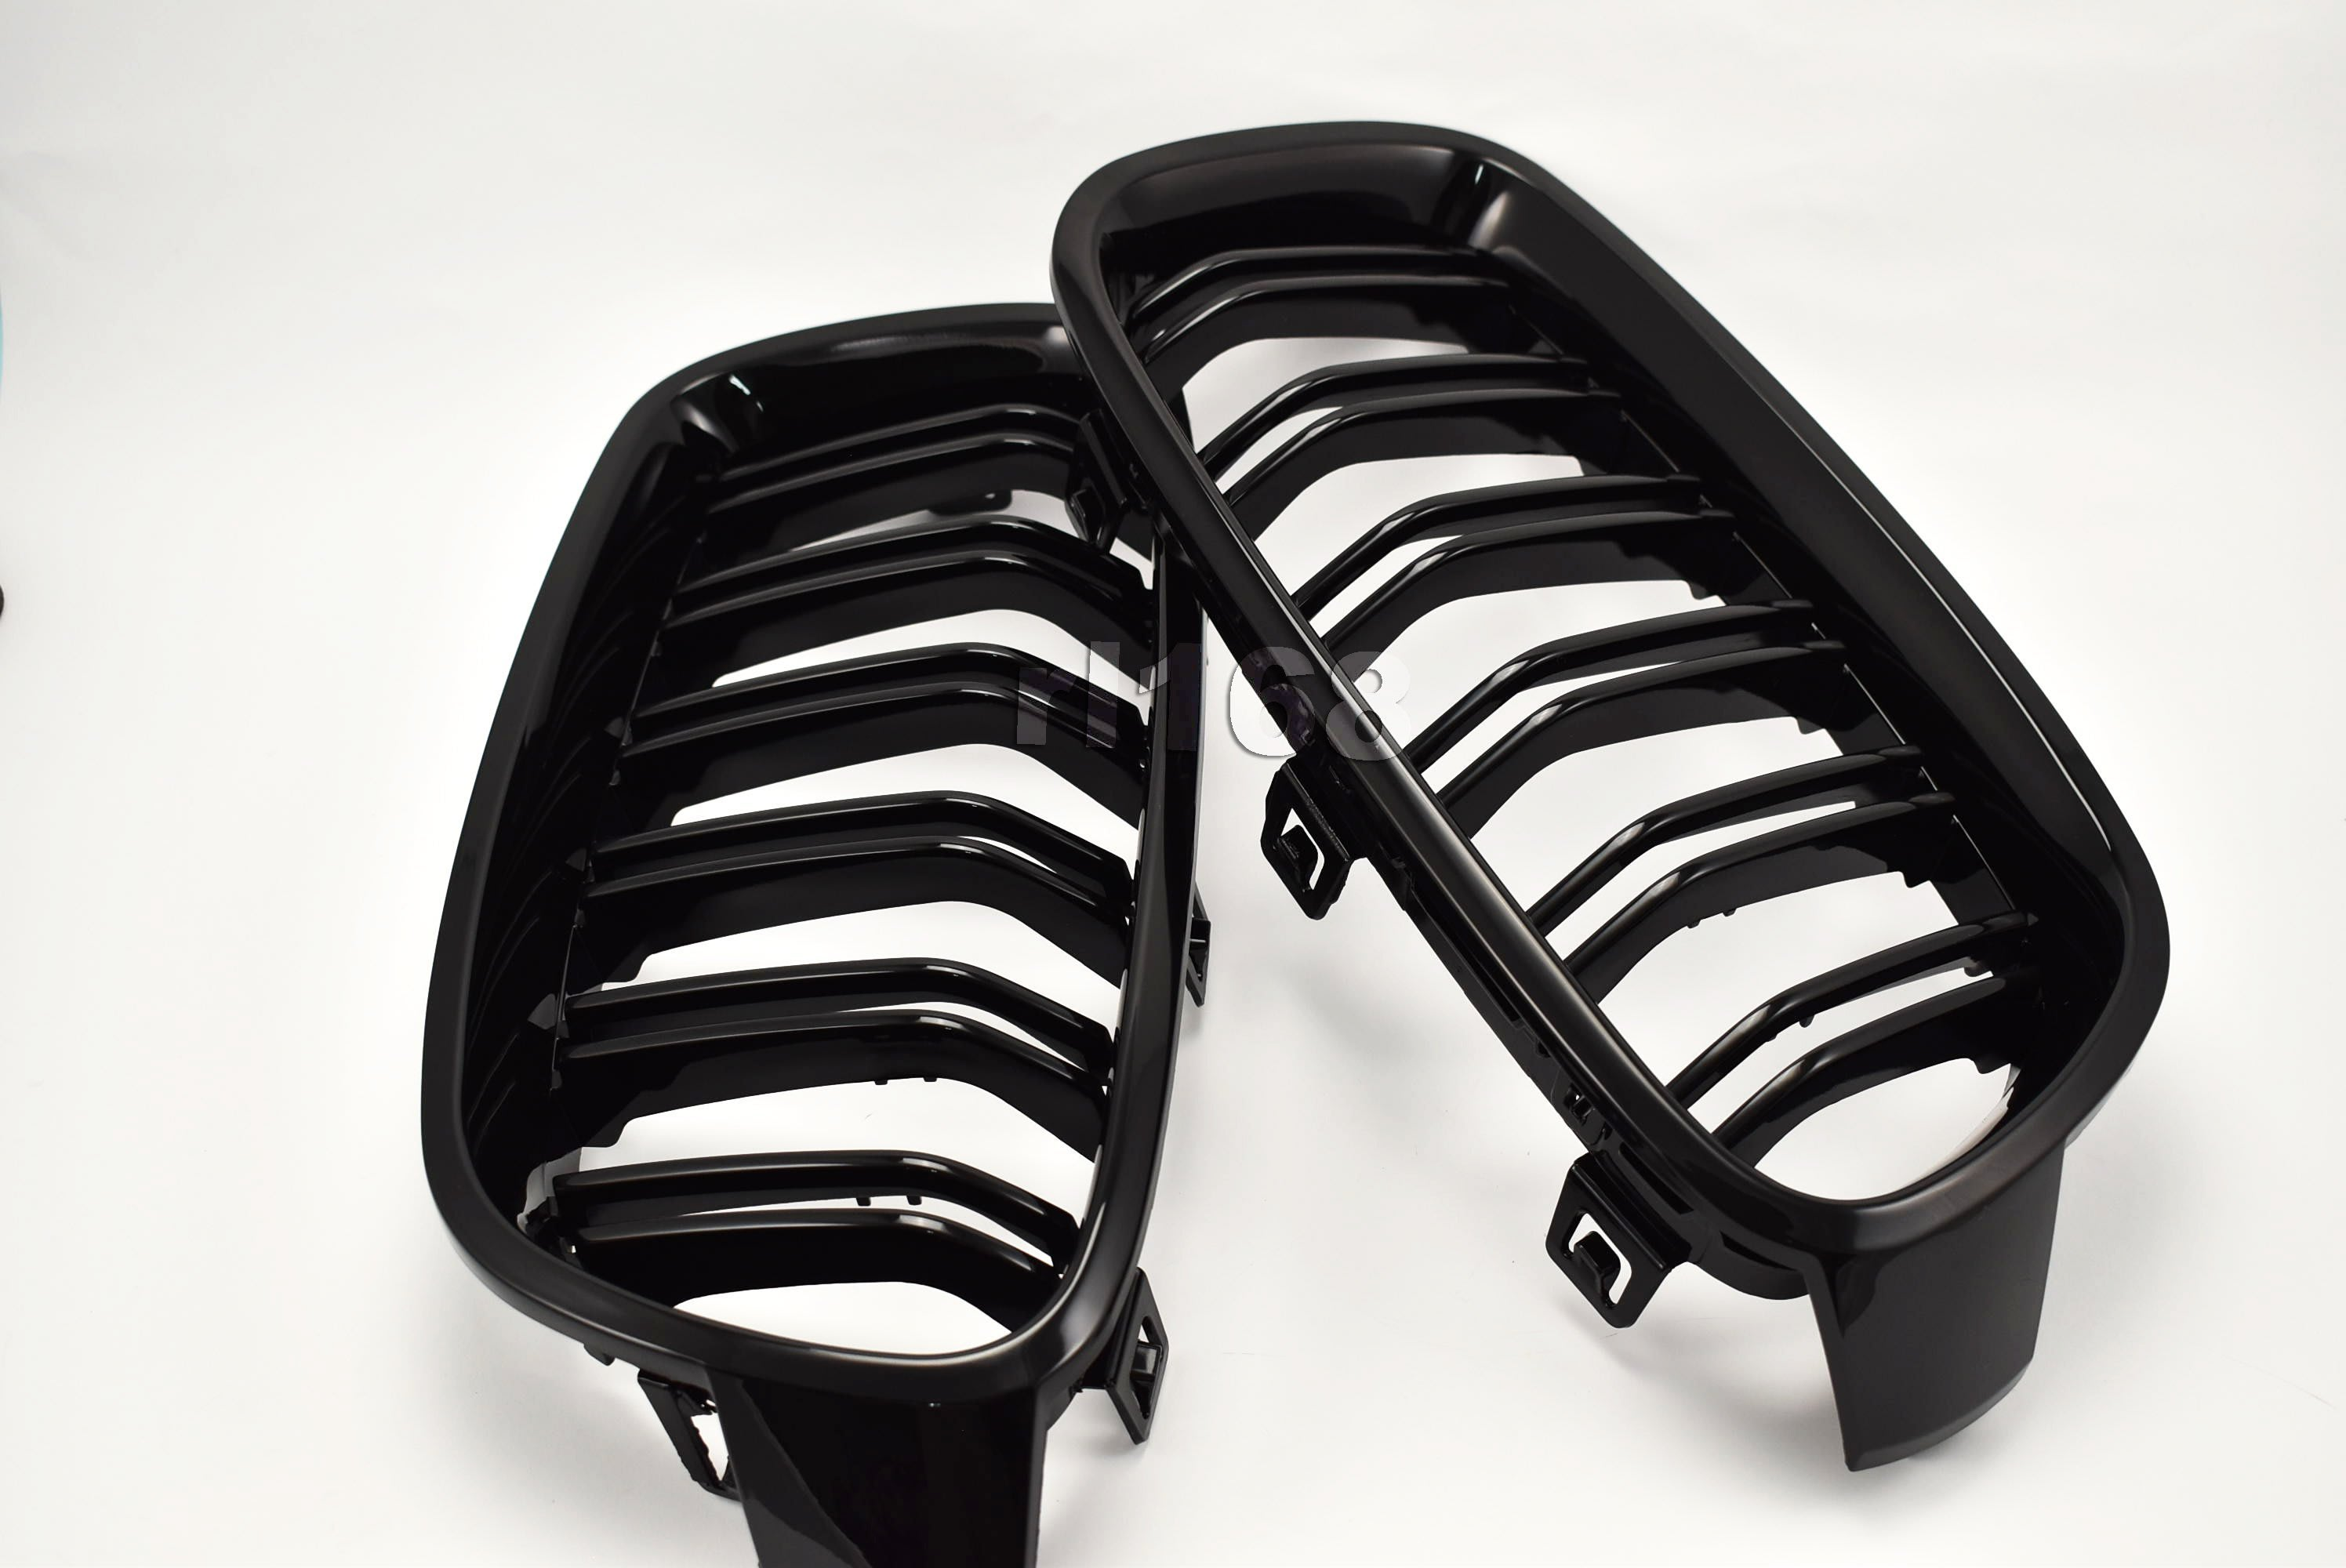 GRILLES for F30 (M3 LOOK 11~)  STYLE SHINY BLACK 水箱罩 全亮黑烤漆